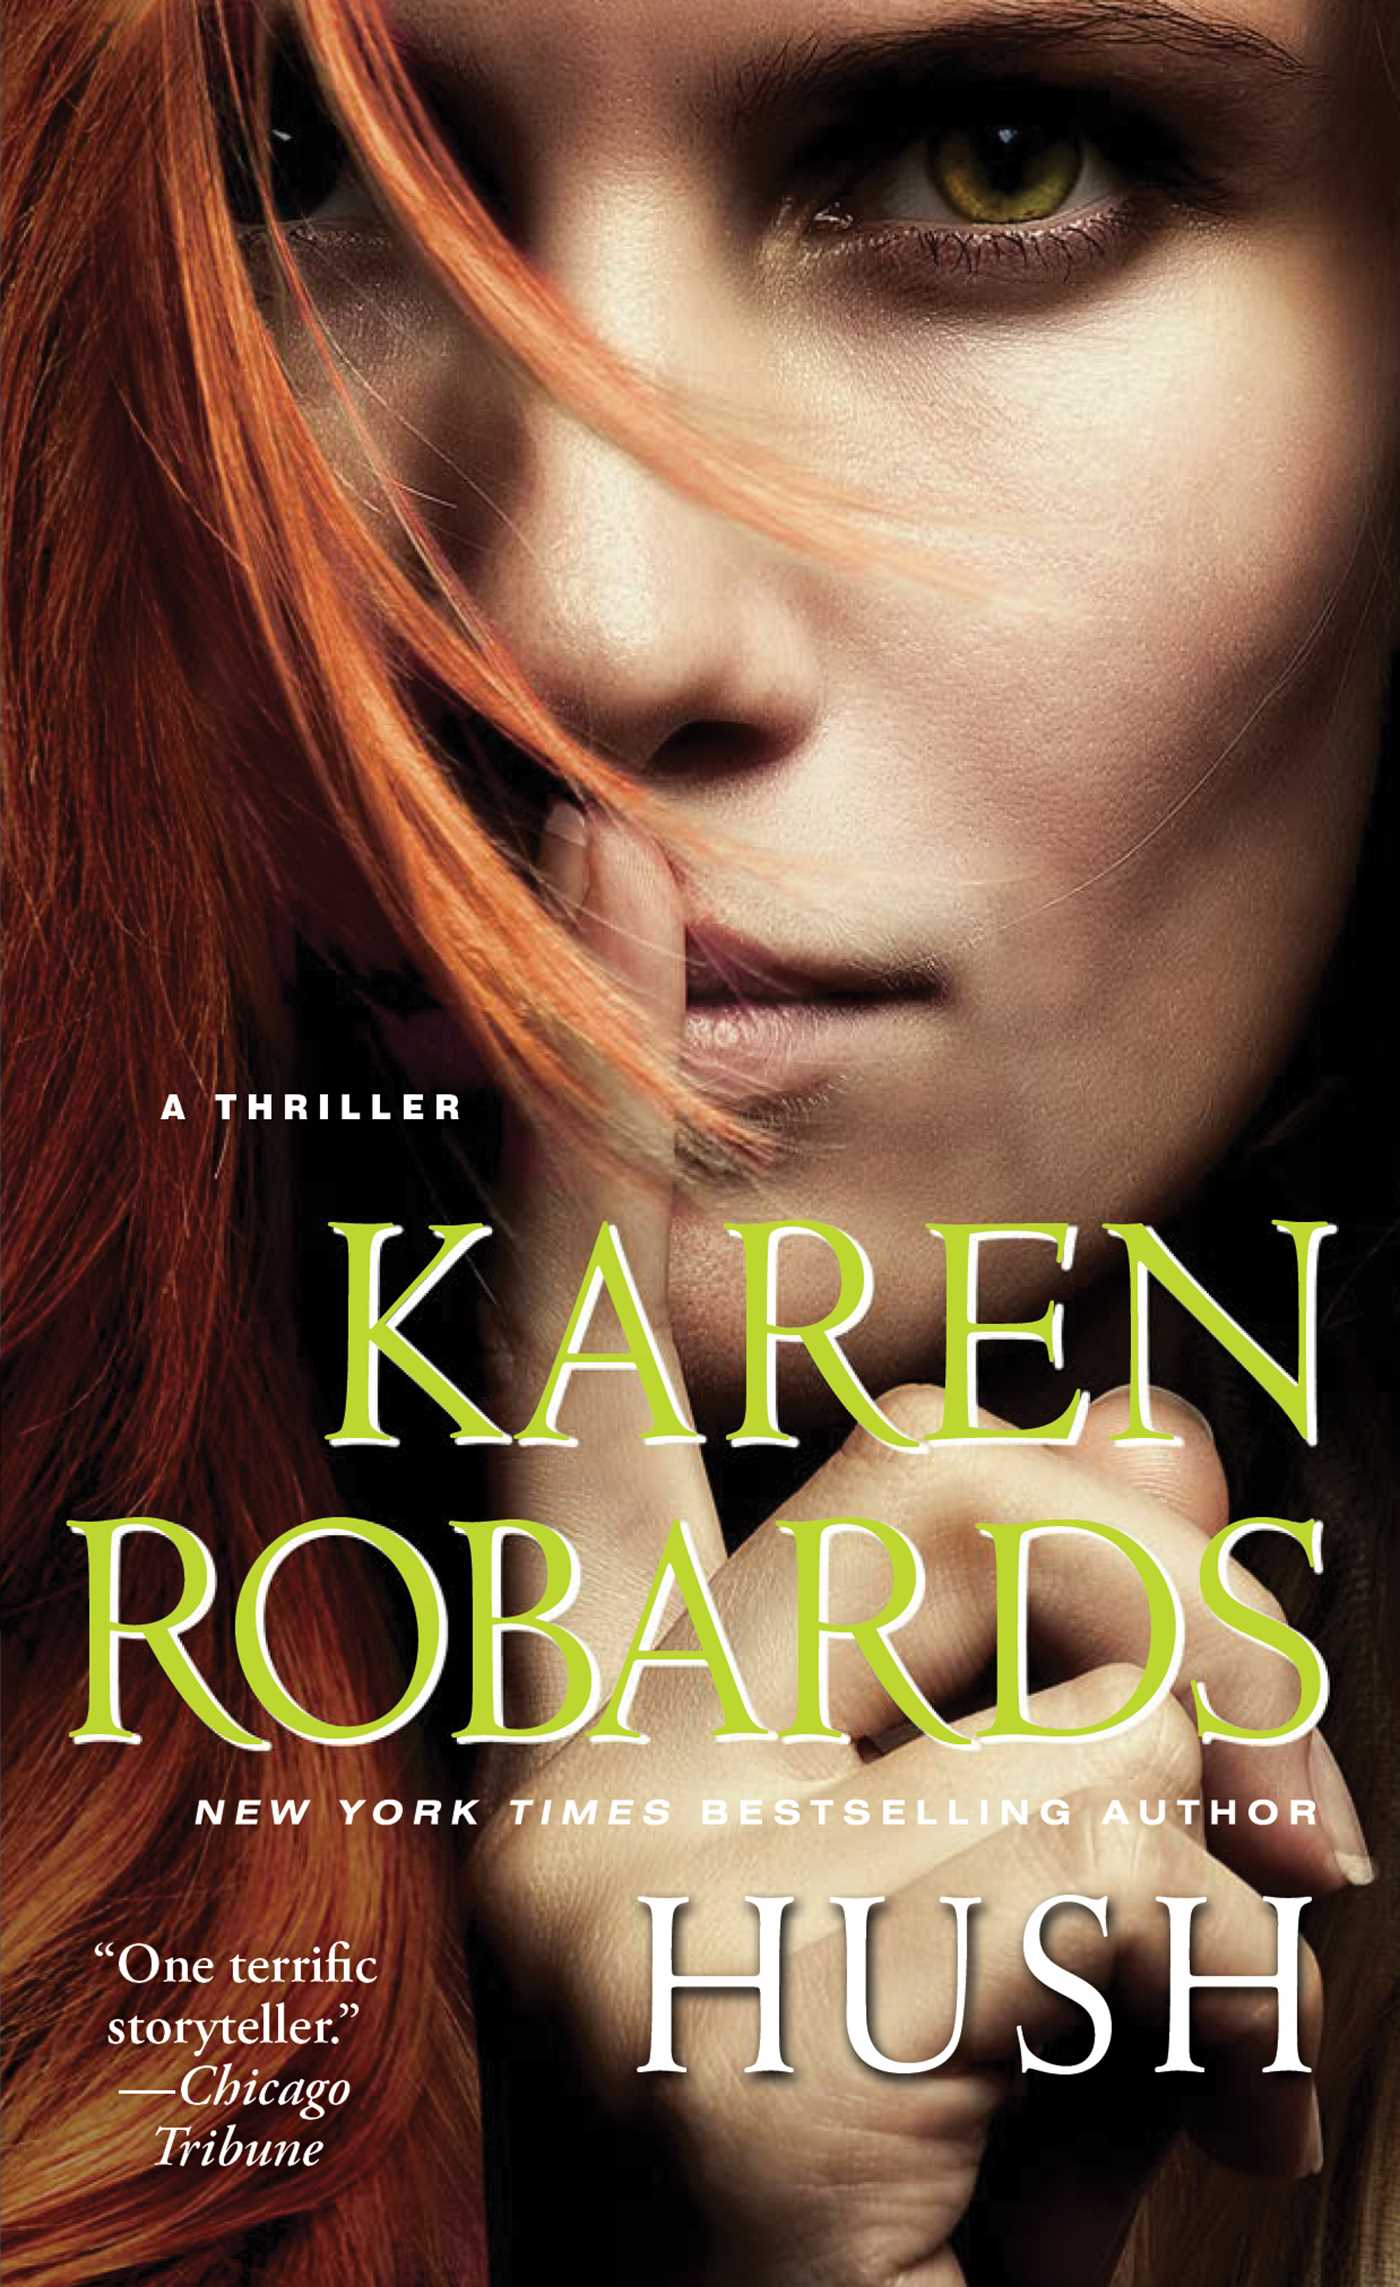 Karen robards official publisher page simon schuster canada book cover image jpg hush fandeluxe Document